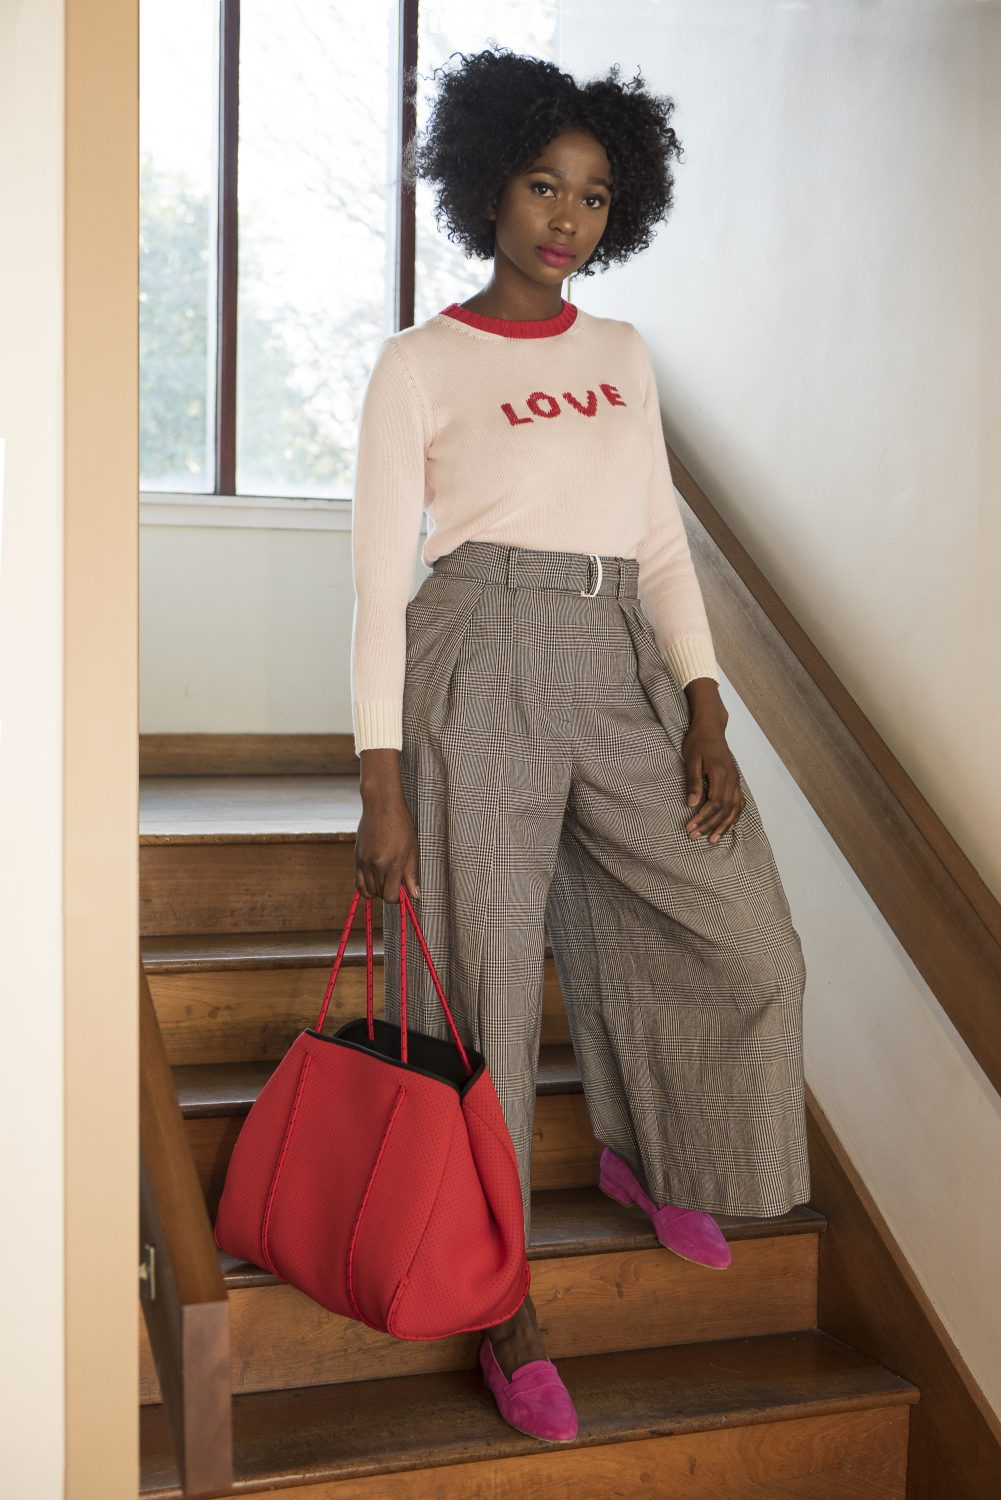 Slogan jumper, £170, check culottes, £250, Weekend Max Mara at Fenwick Tunbridge Wells fenwick.co.uk; bag, £80, Hermosa London hermosalondon.com; suede loafers, £115, Manuka Shoes manukashoes.com